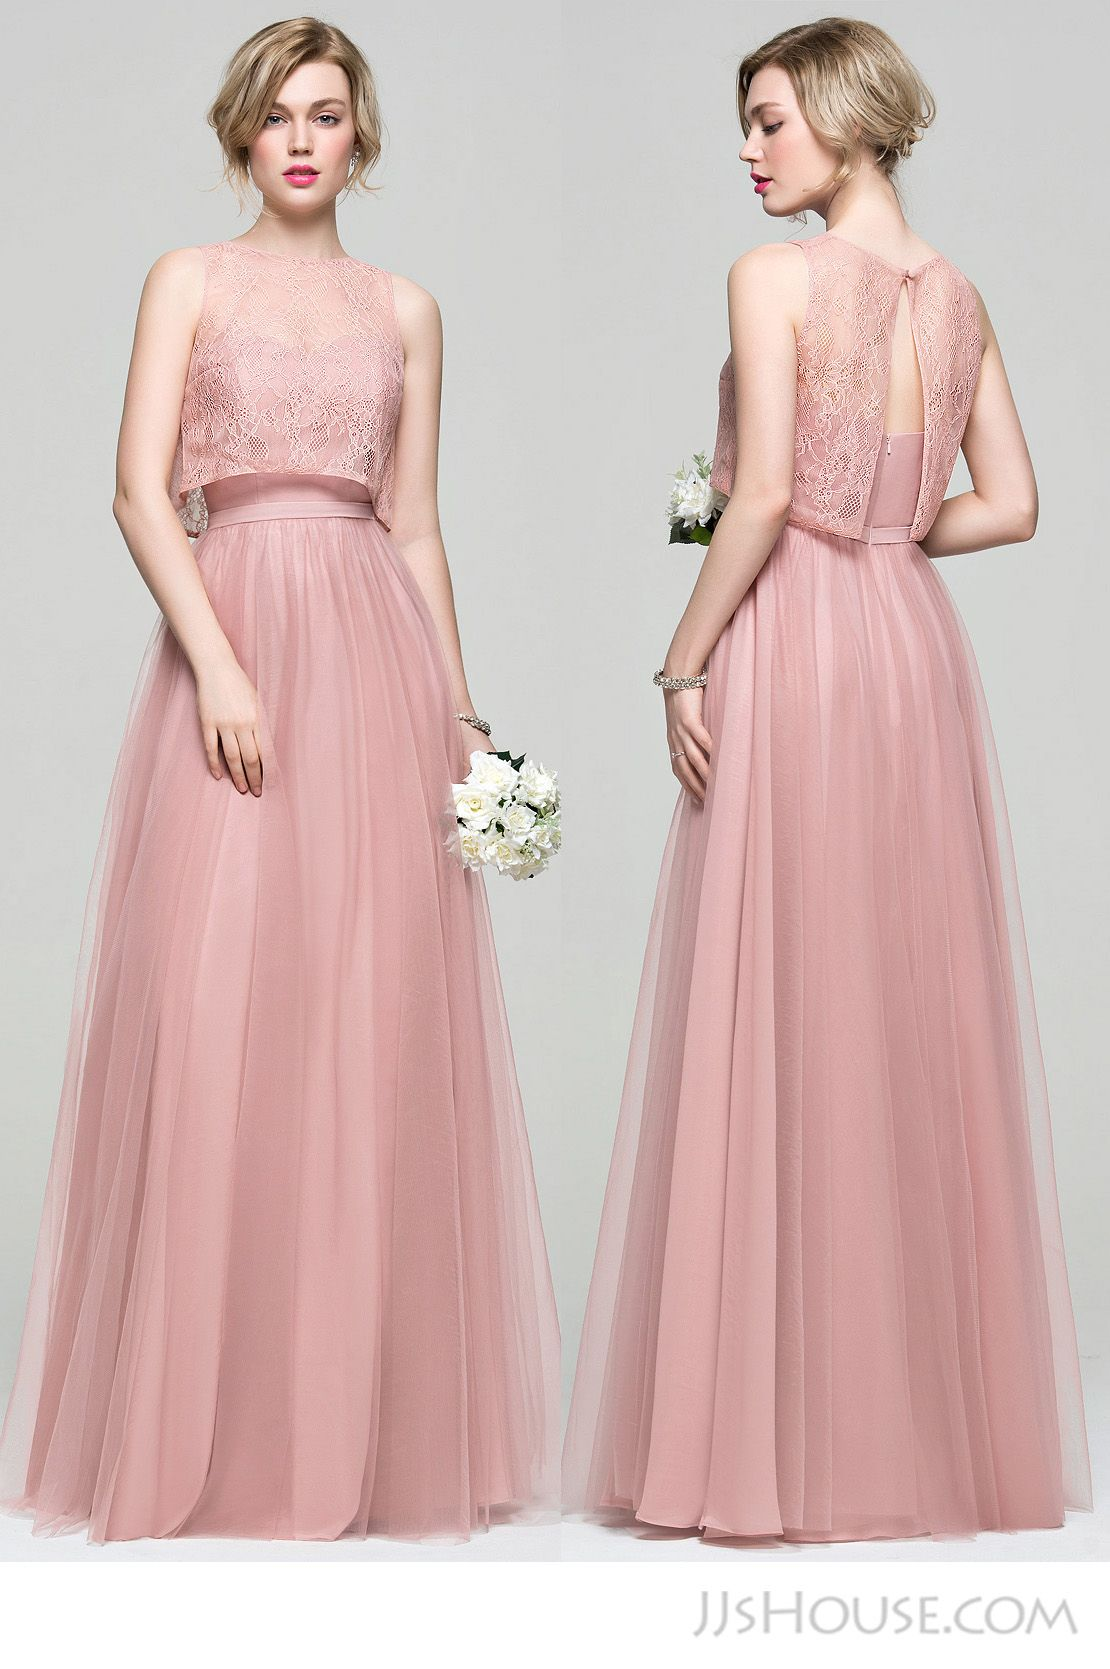 Elegant bridesmaid dress. #JJsHouse | Moda | Pinterest | Damas ...